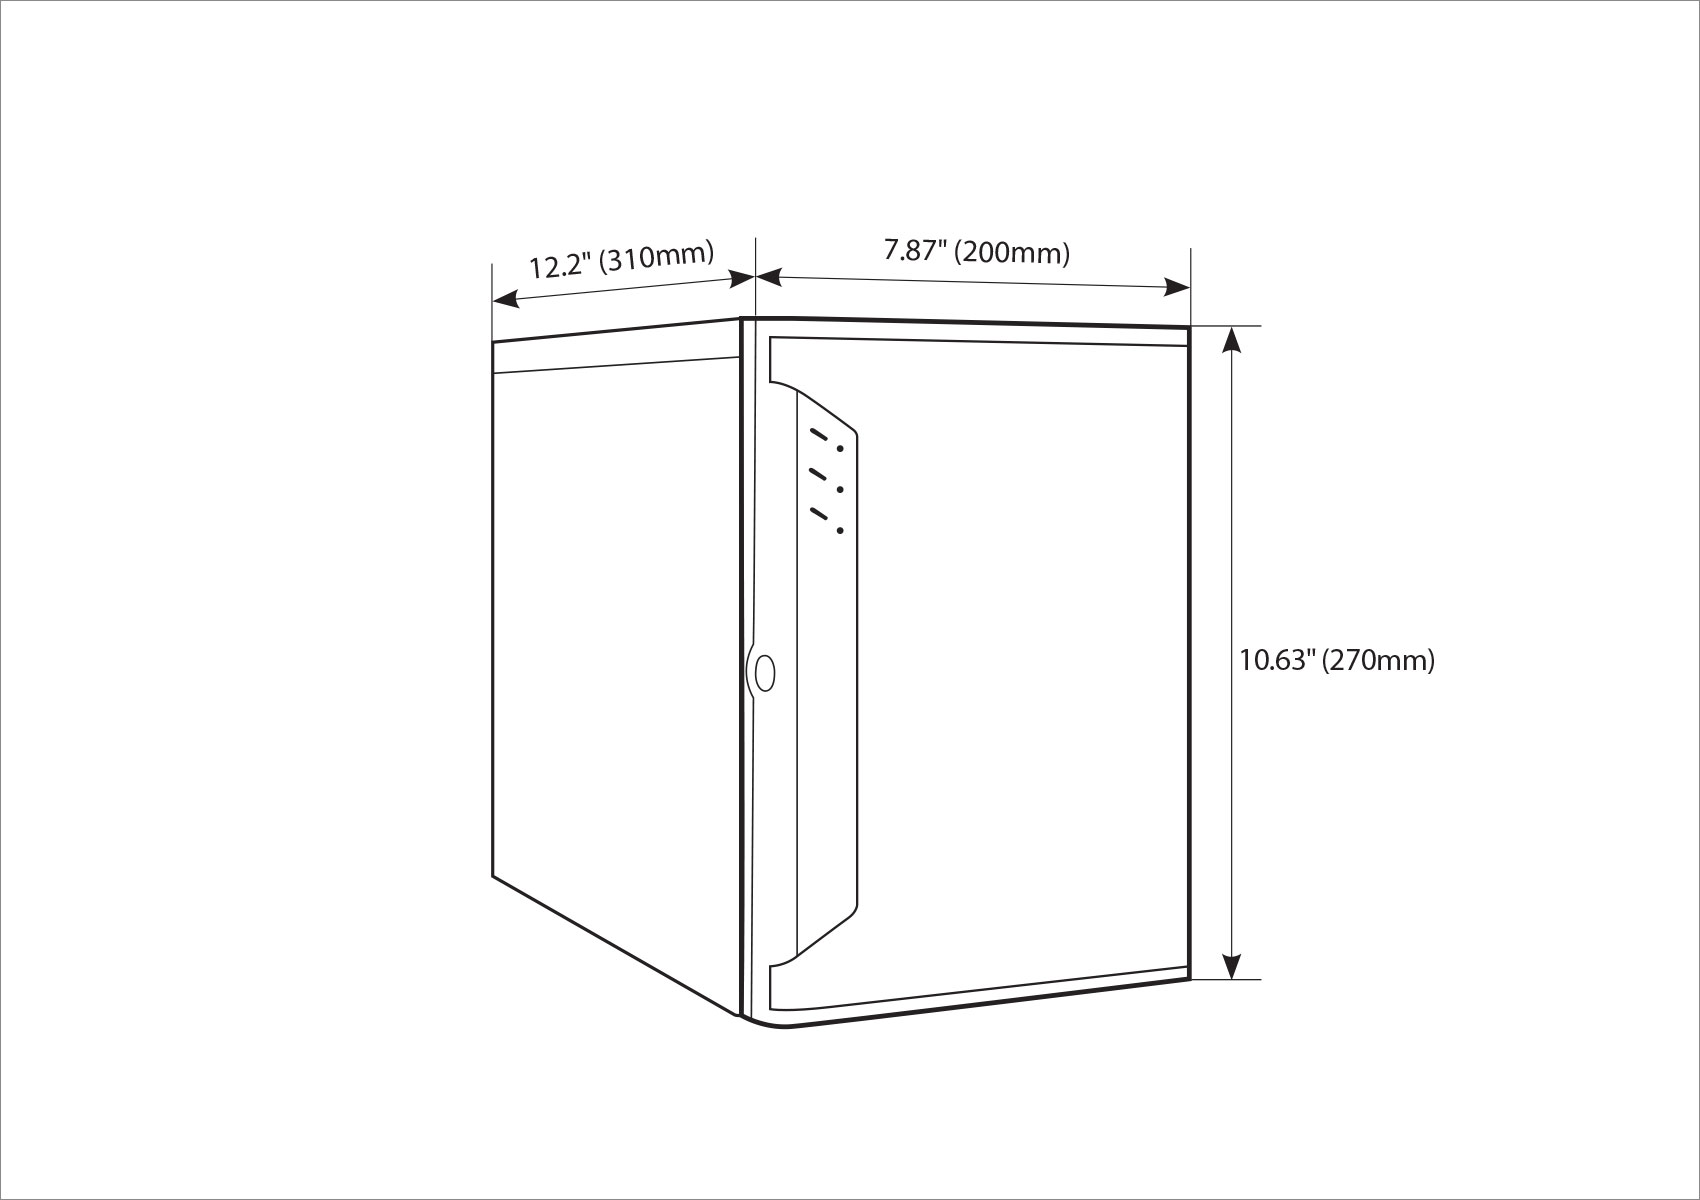 hpz240 workstation how to use front drive bays